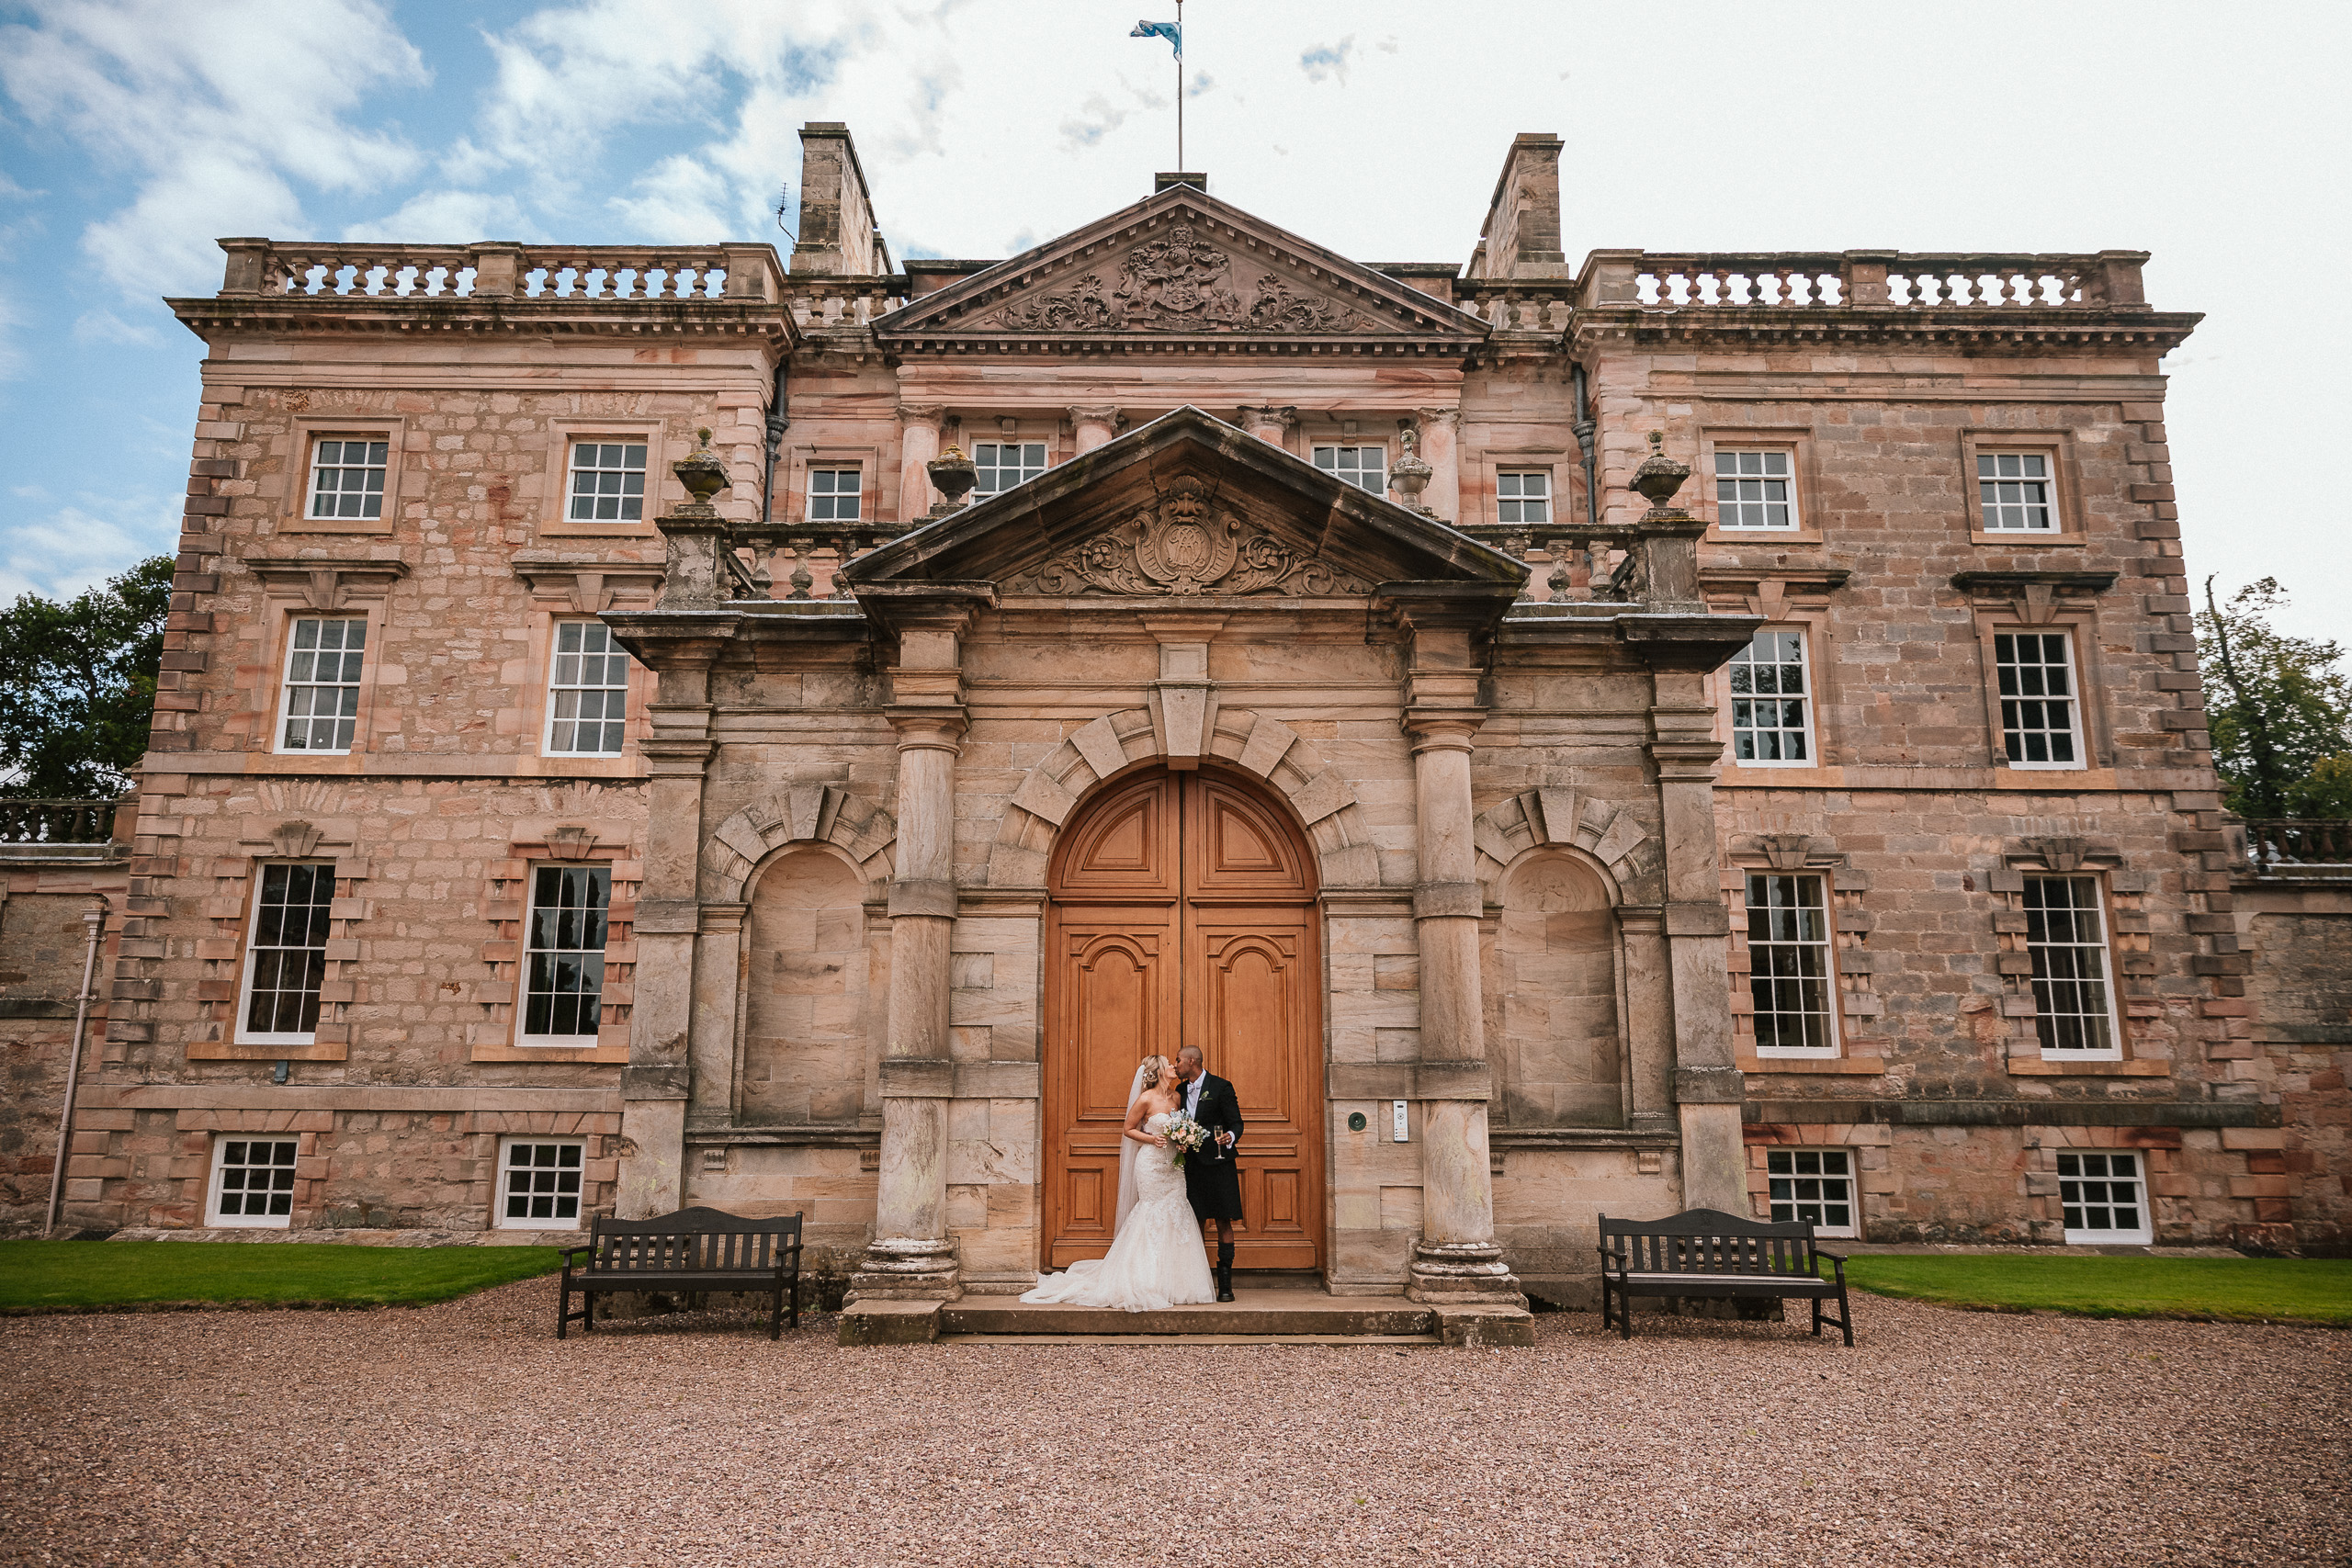 PapaKåta couple April & Martin's Sperry wedding at Arniston House, Scotland captured by Laurence Howe Photography